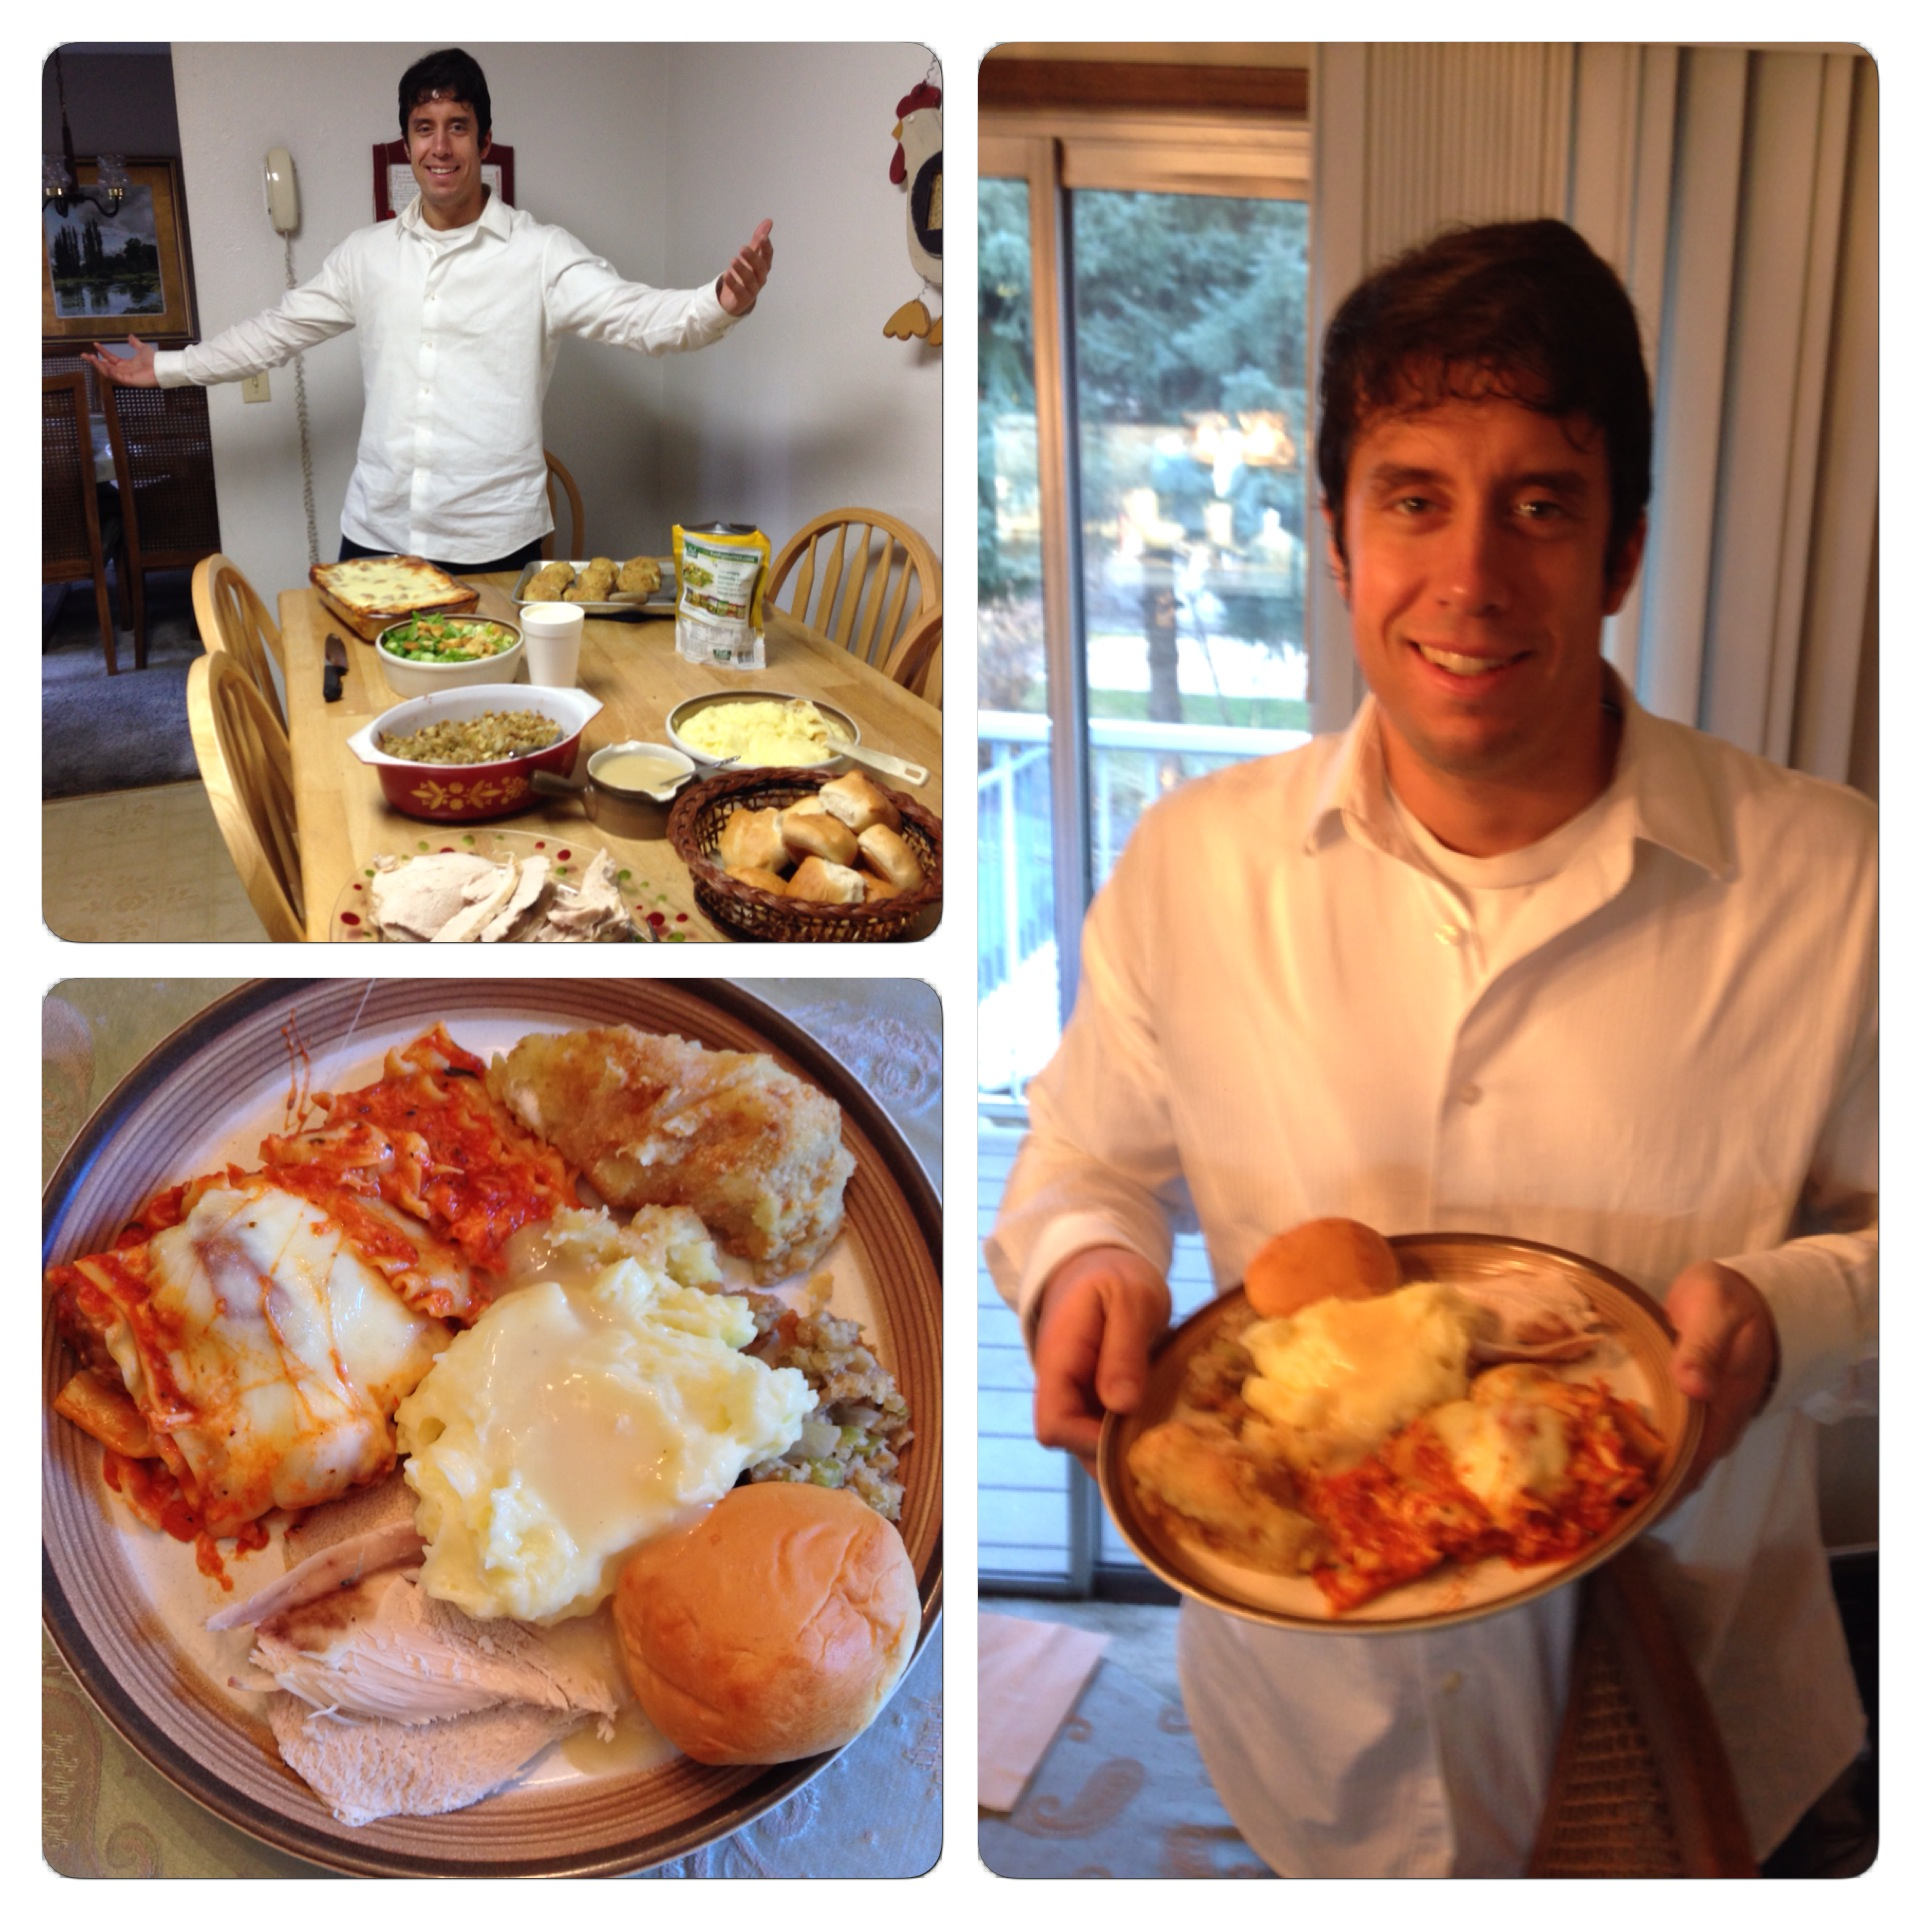 In these shots from Thanksgiving 2013 you can see the lasagna both on the table and on the my plate.